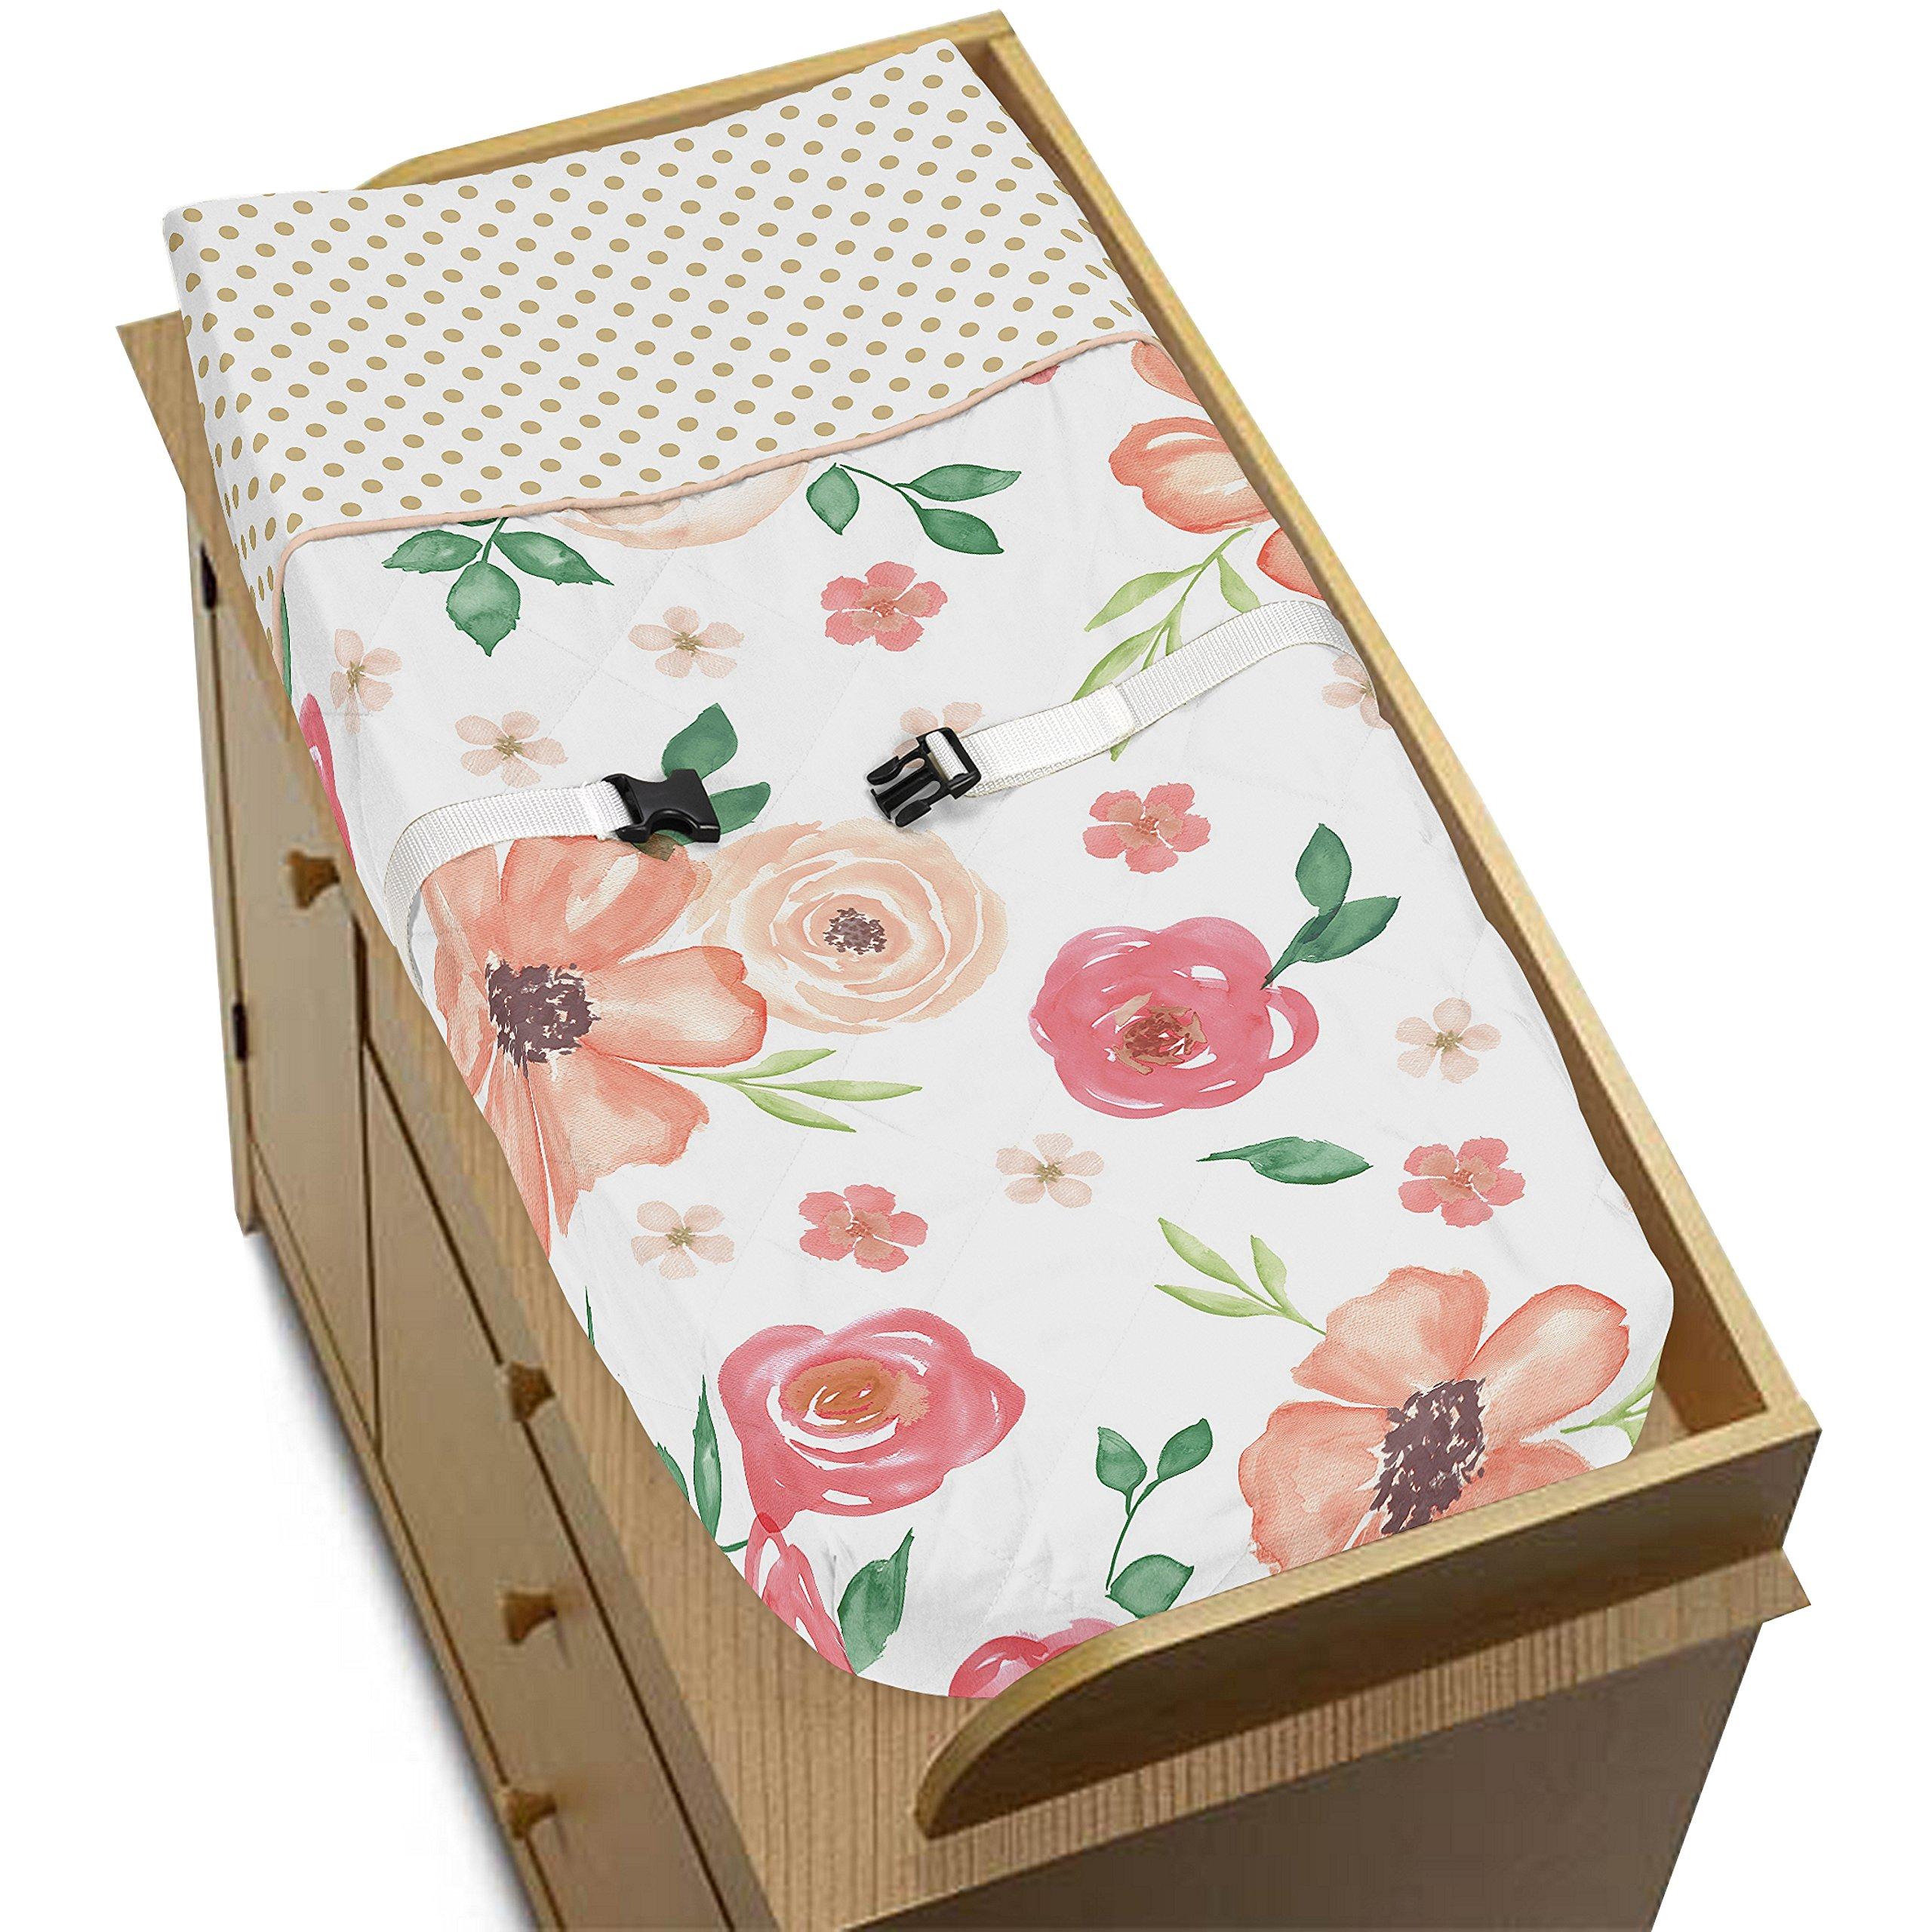 Sweet Jojo Designs Peach, Green and Gold Changing Pad Cover for Watercolor Floral Collection - Pink Rose Flower by Sweet Jojo Designs